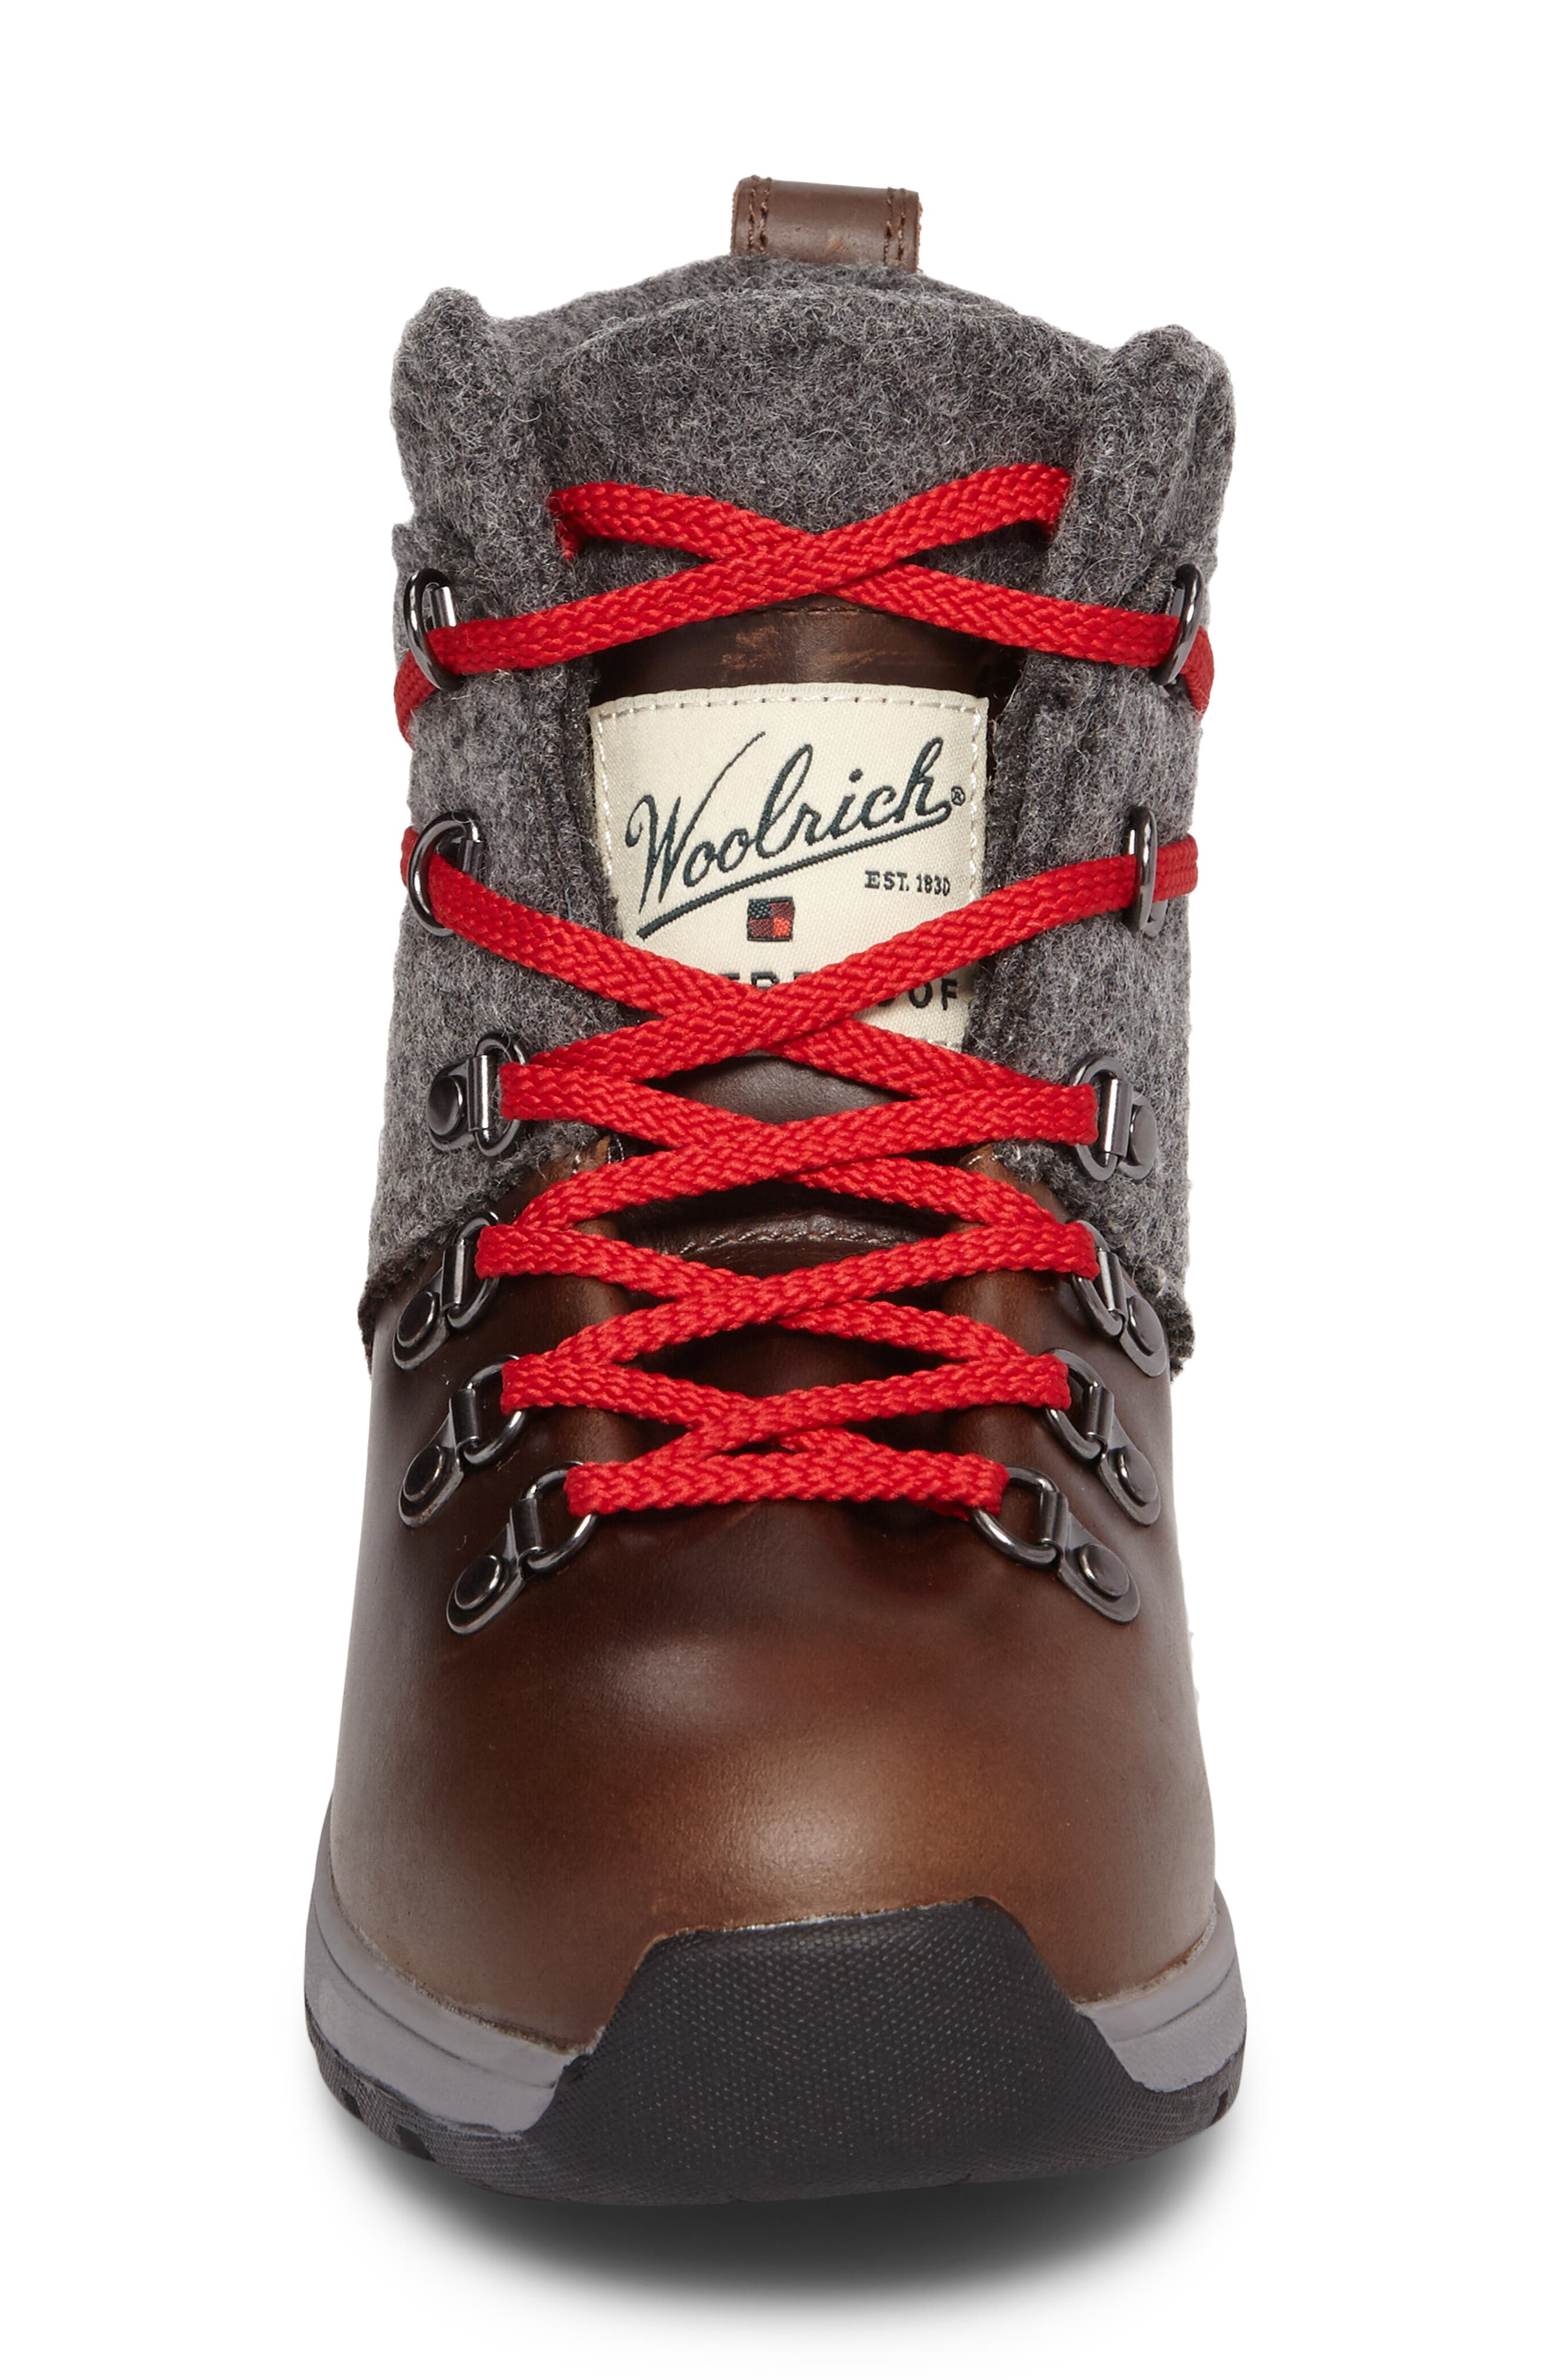 Alternate Image 4  - Woolrich Rockies II Waterproof Hiking Boot (Women)